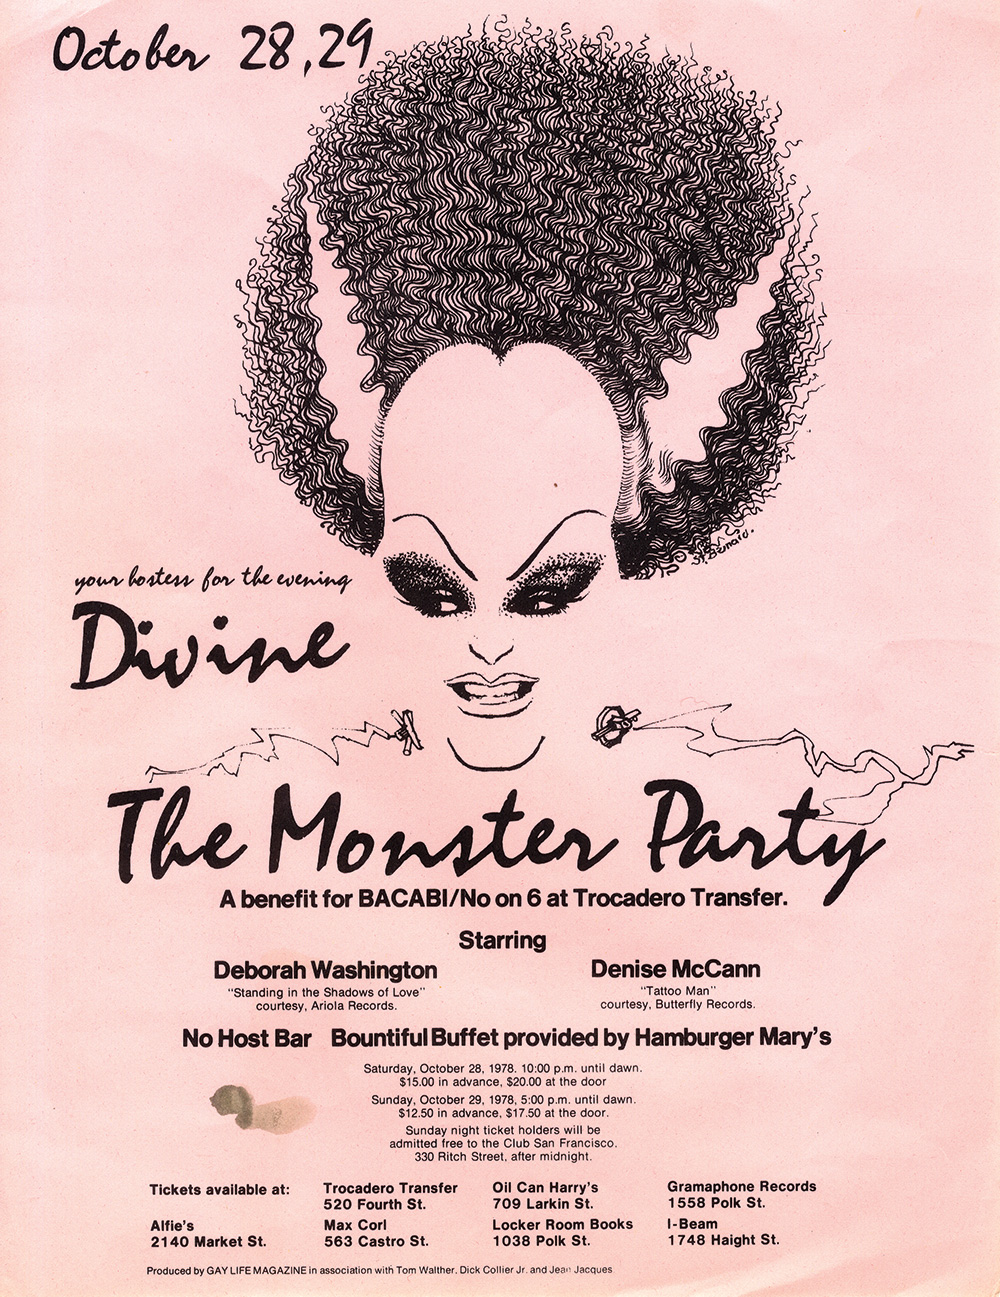 Divine in The Moster Party